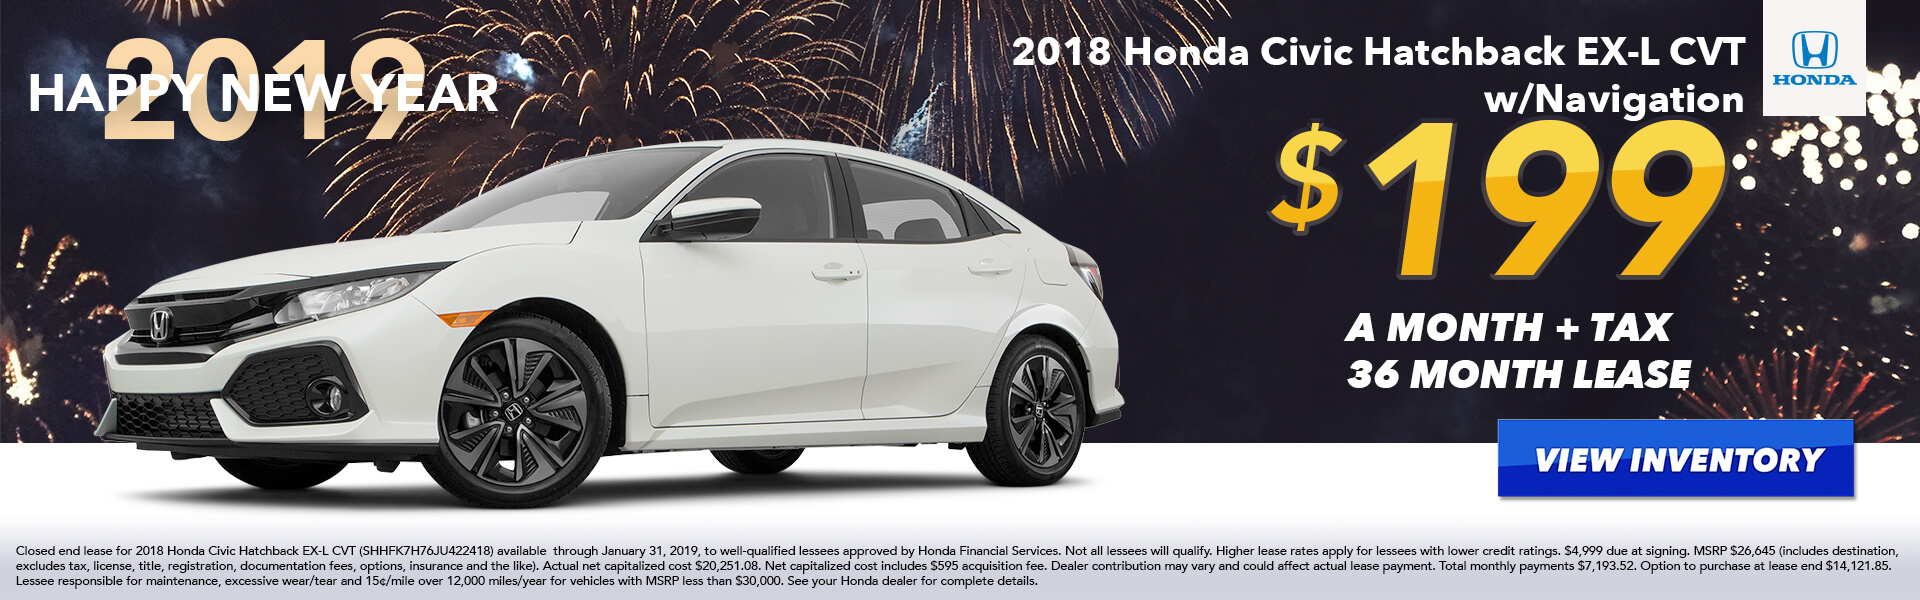 Civic Hatch Lease $69